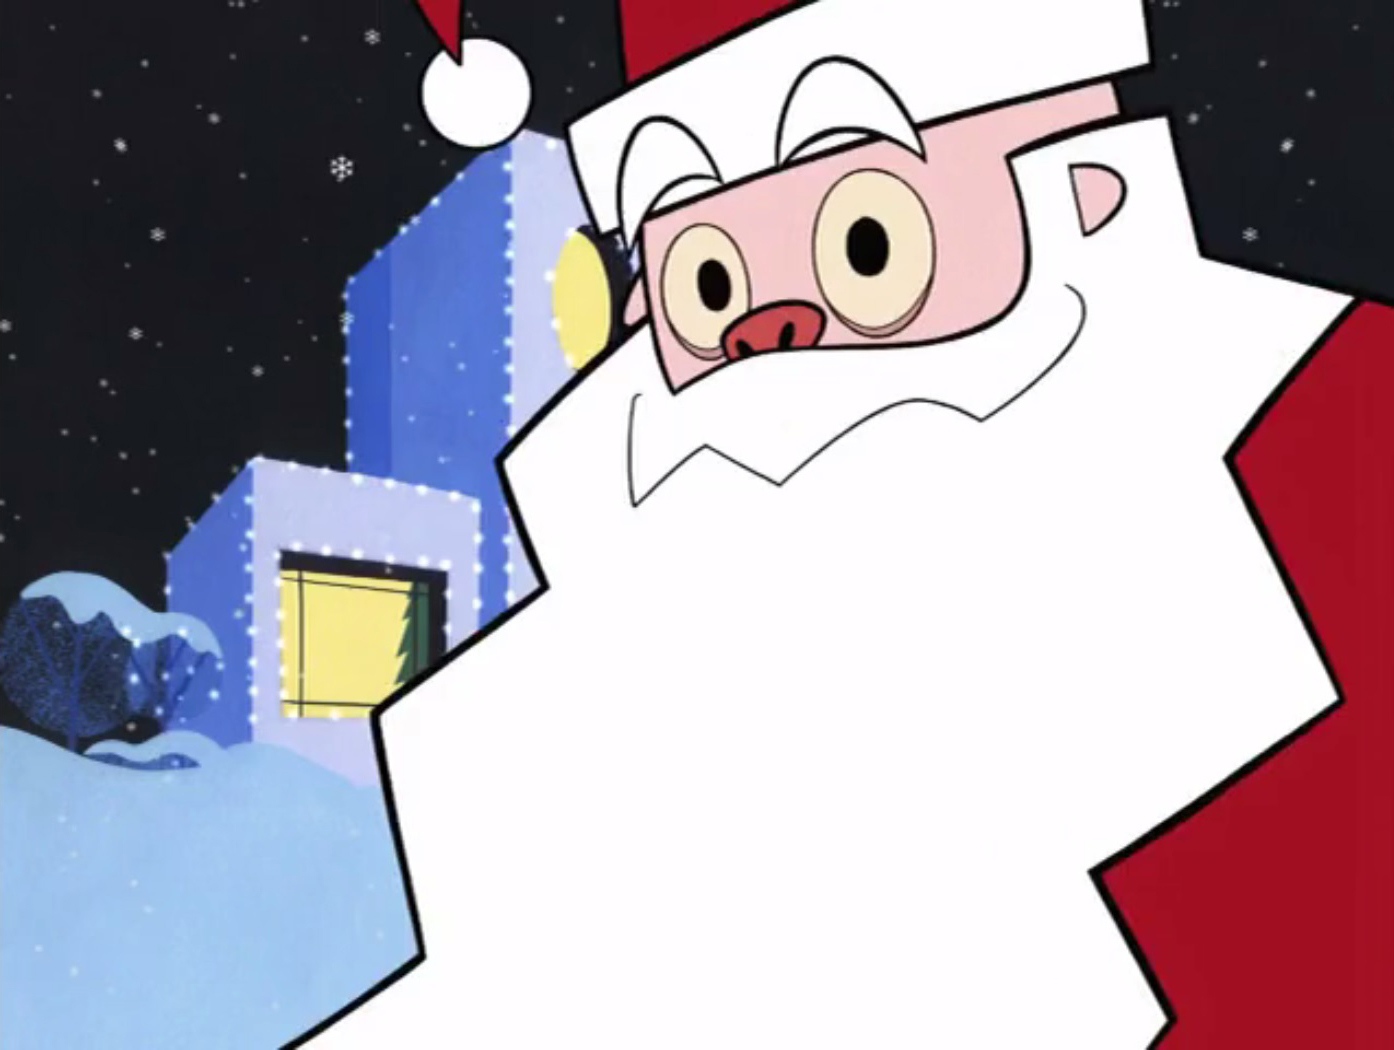 Ppg Twas The Fight Before Christmas.Holiday Film Reviews Powerpuff Girls Twas The Fight